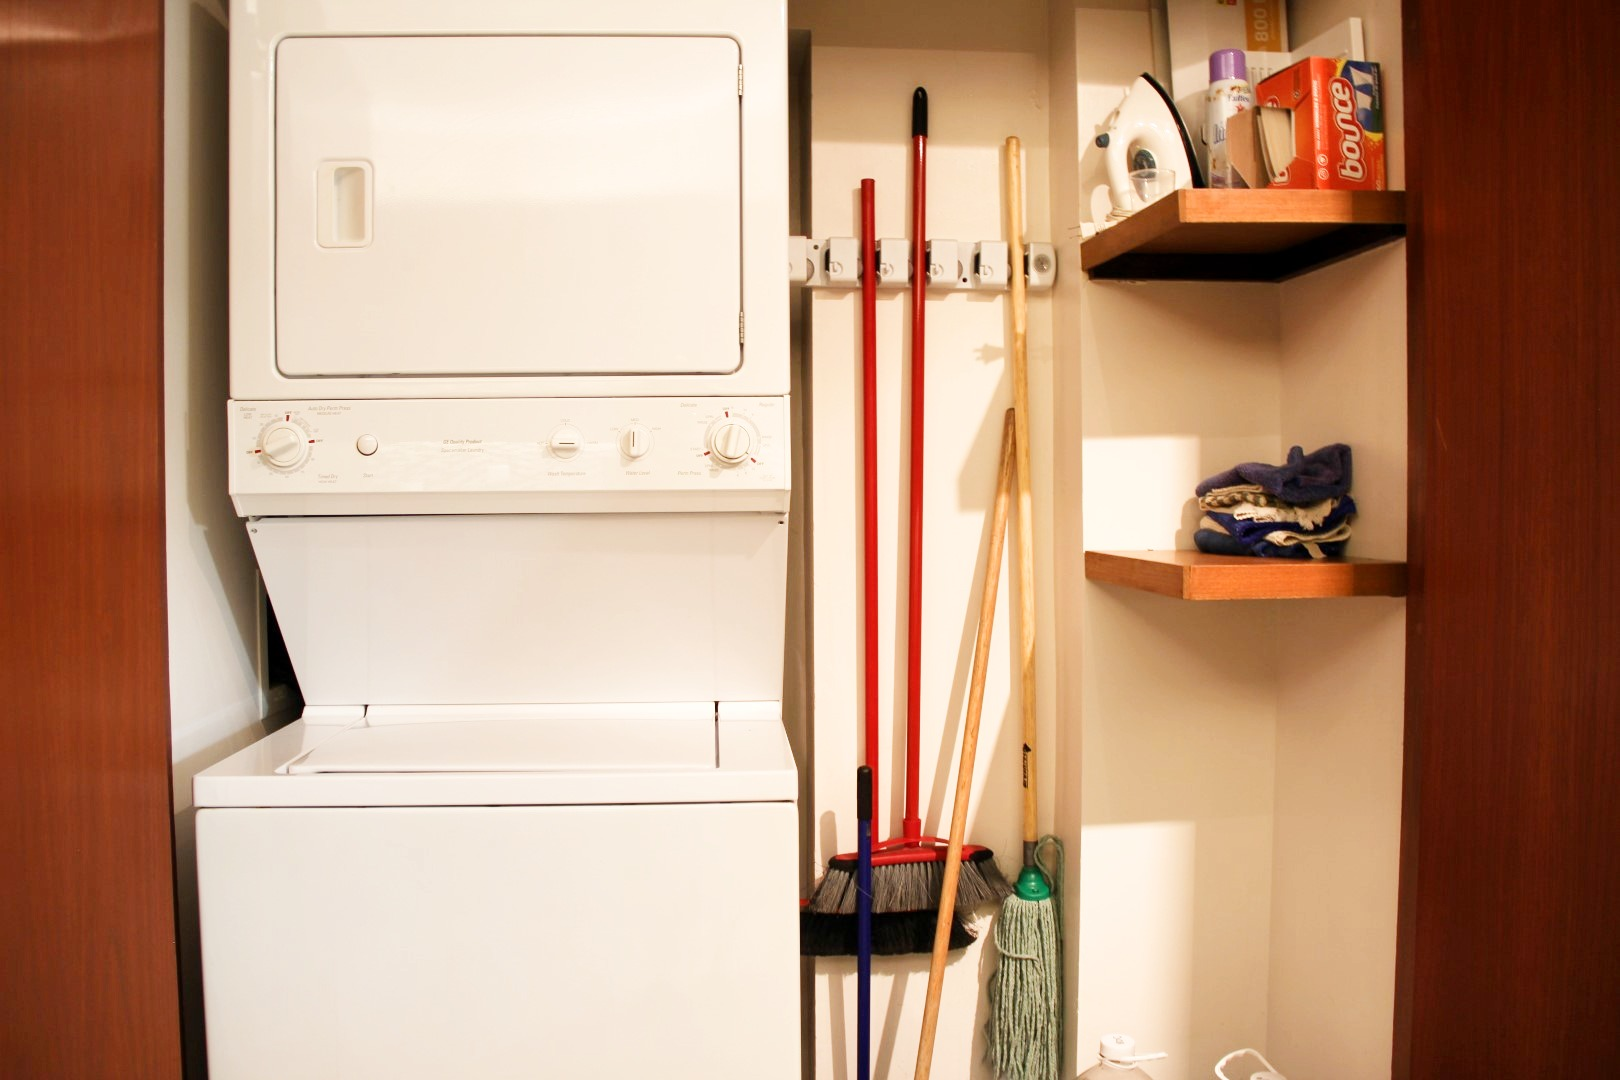 Cleaning closet off of kitchen.